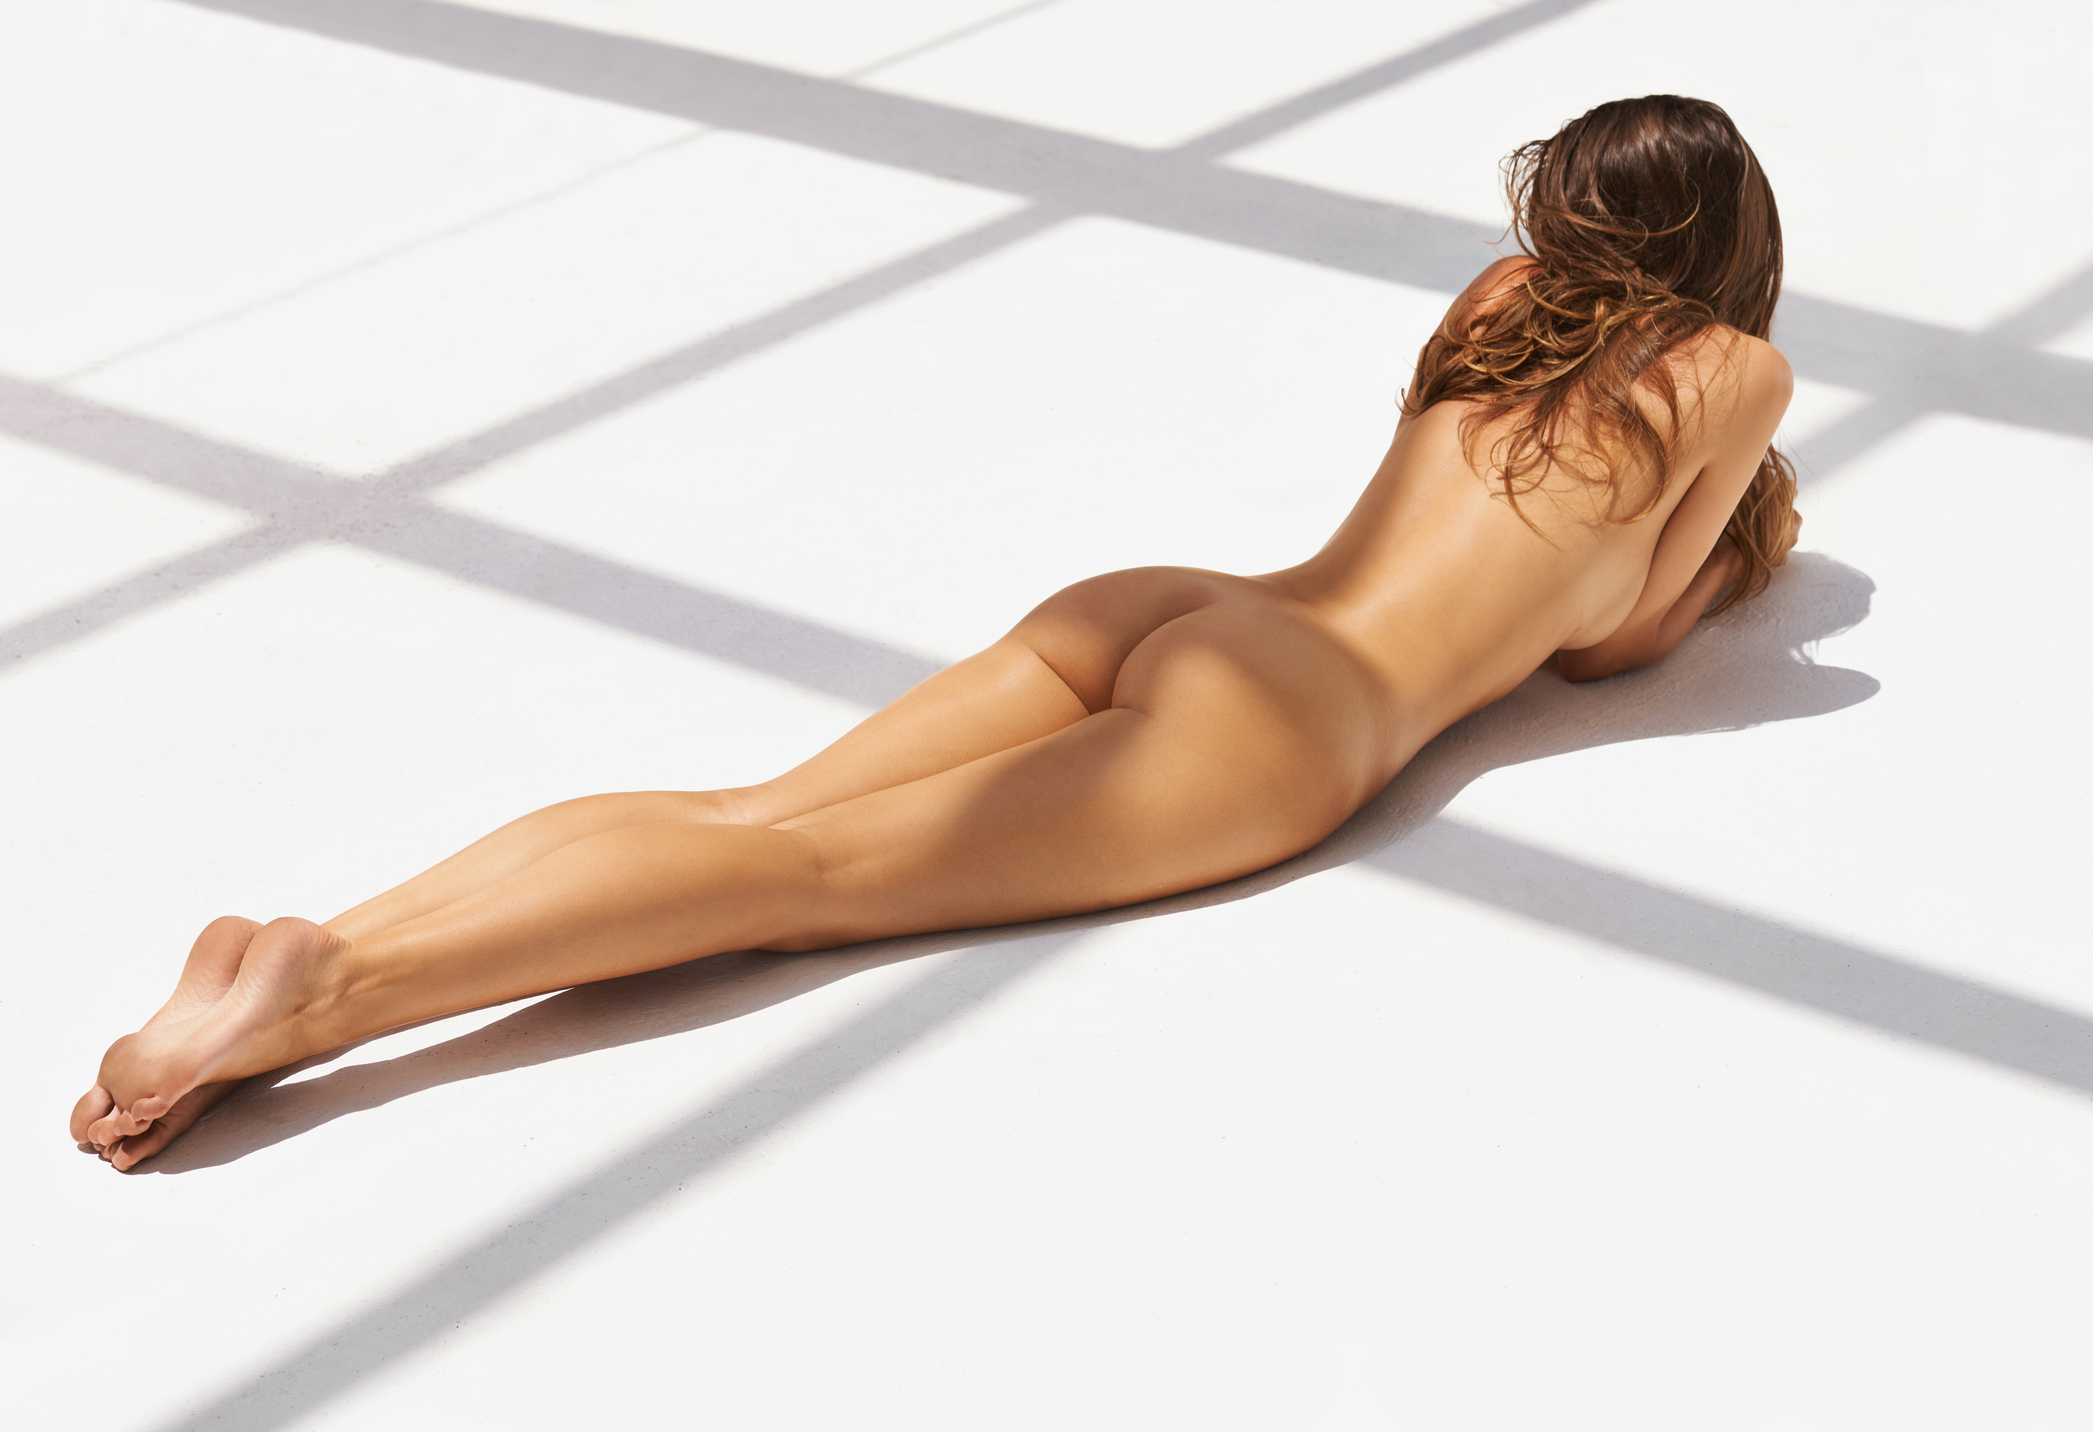 Rearview shot of a nude young woman lying naked on the floor in a penthousehttp://195.154.178.81/DATA/i_collage/pi/shoots/783879.jpg